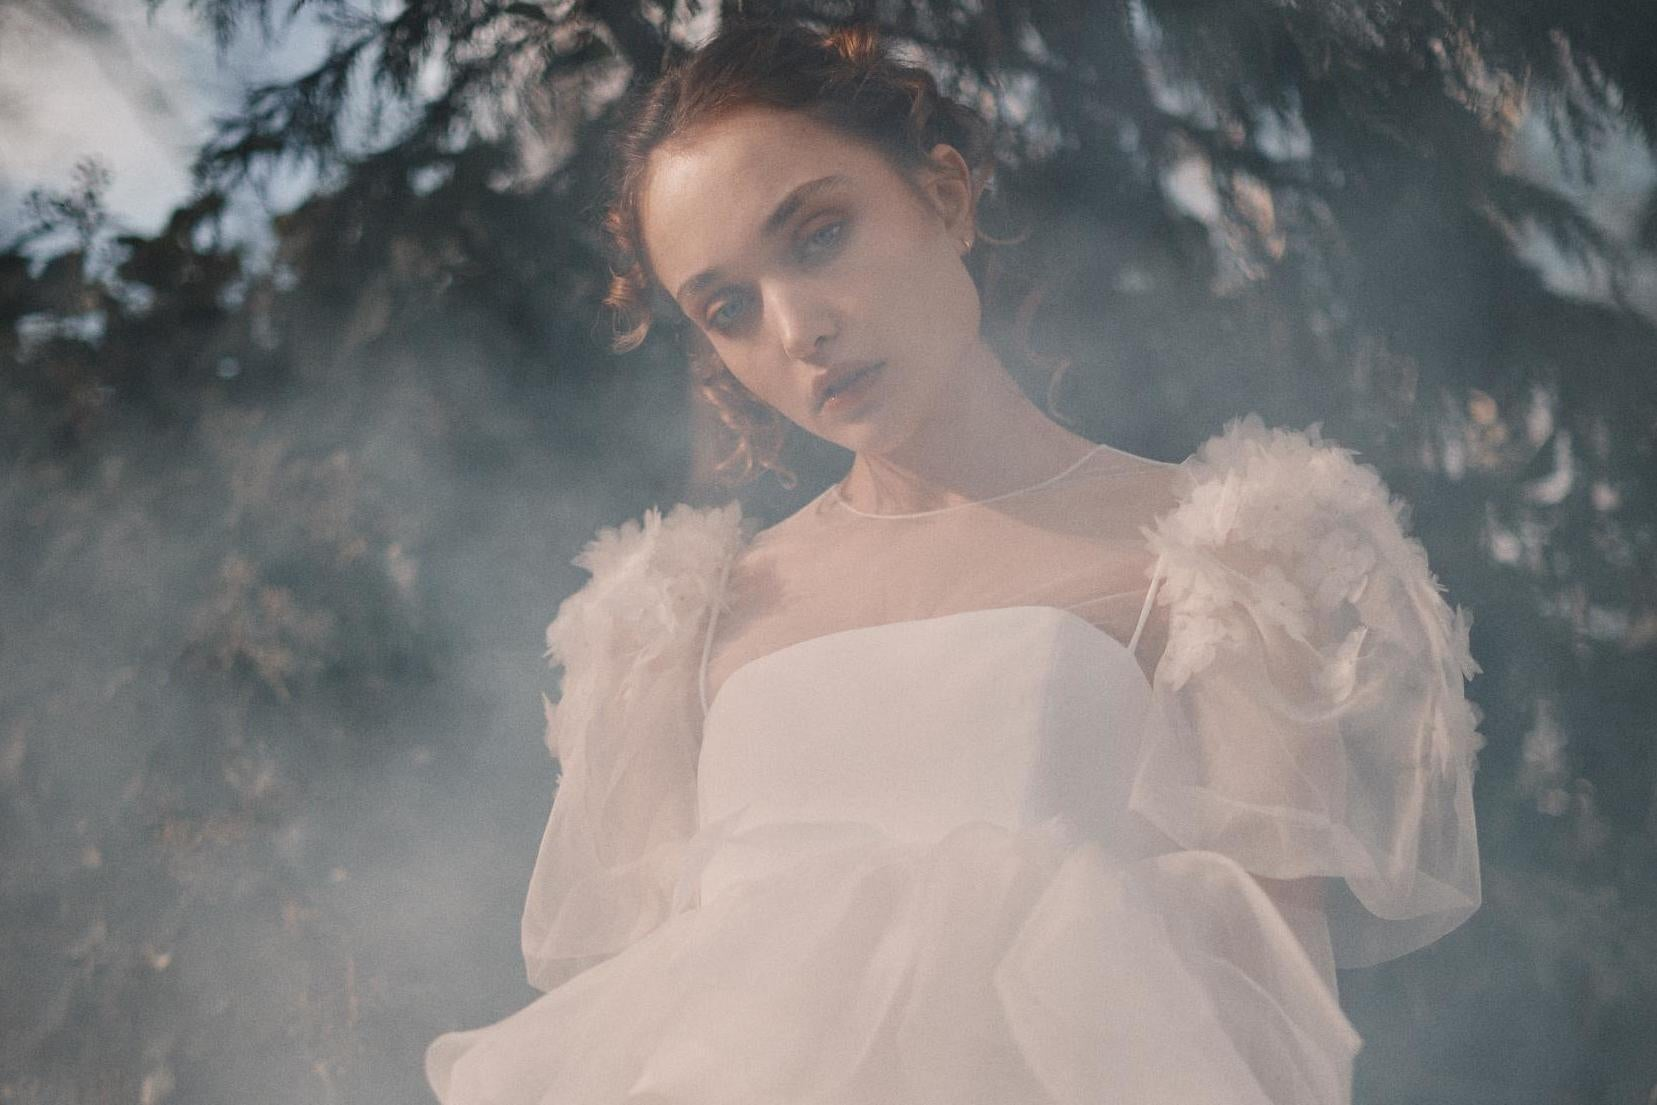 The best bridal trends for autumn/winter 2019 from statement sleeves to classy capes